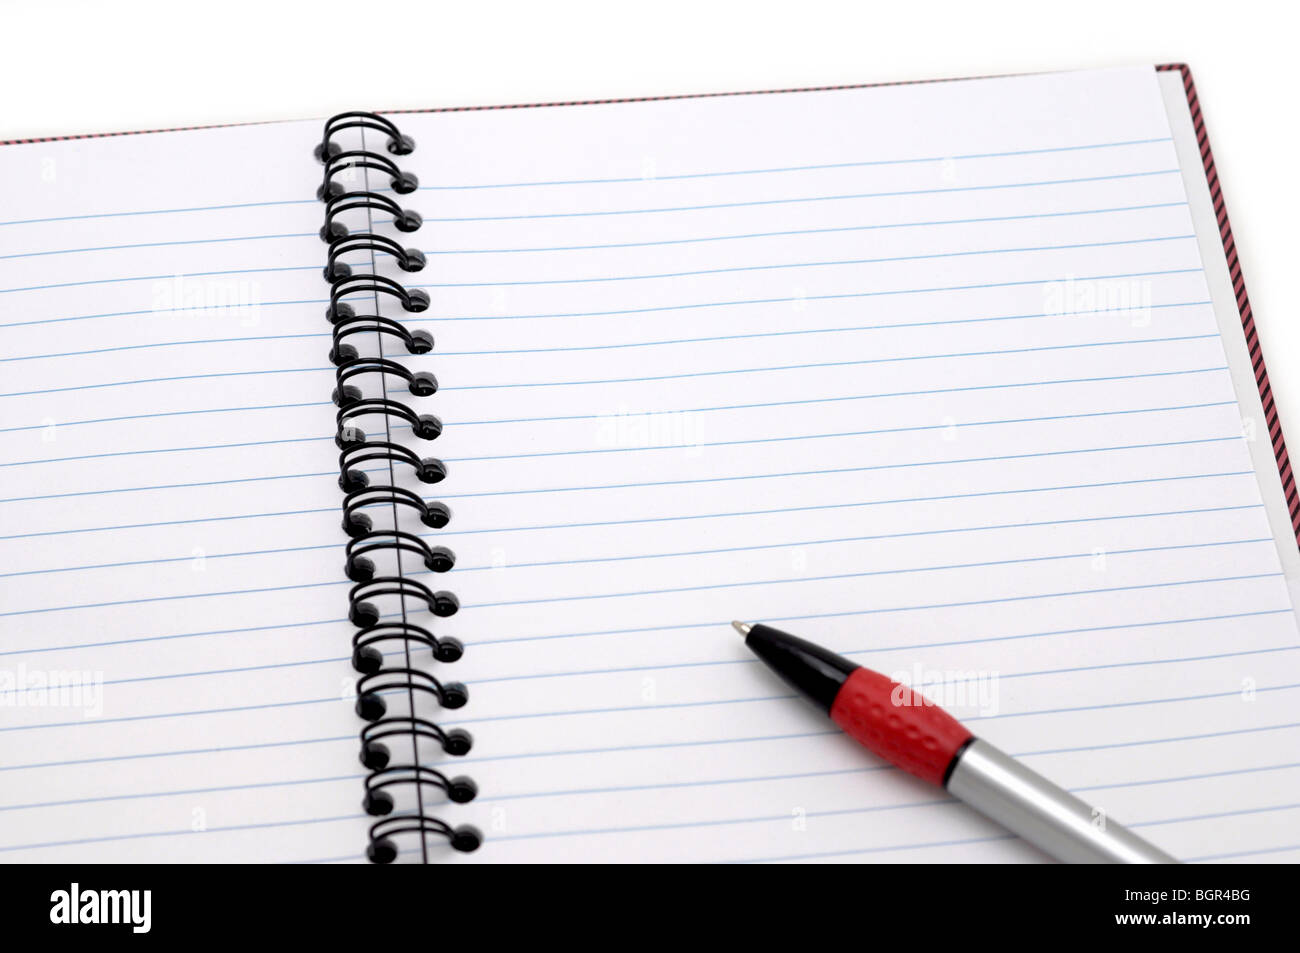 Open Notebook with Pen - Stock Image